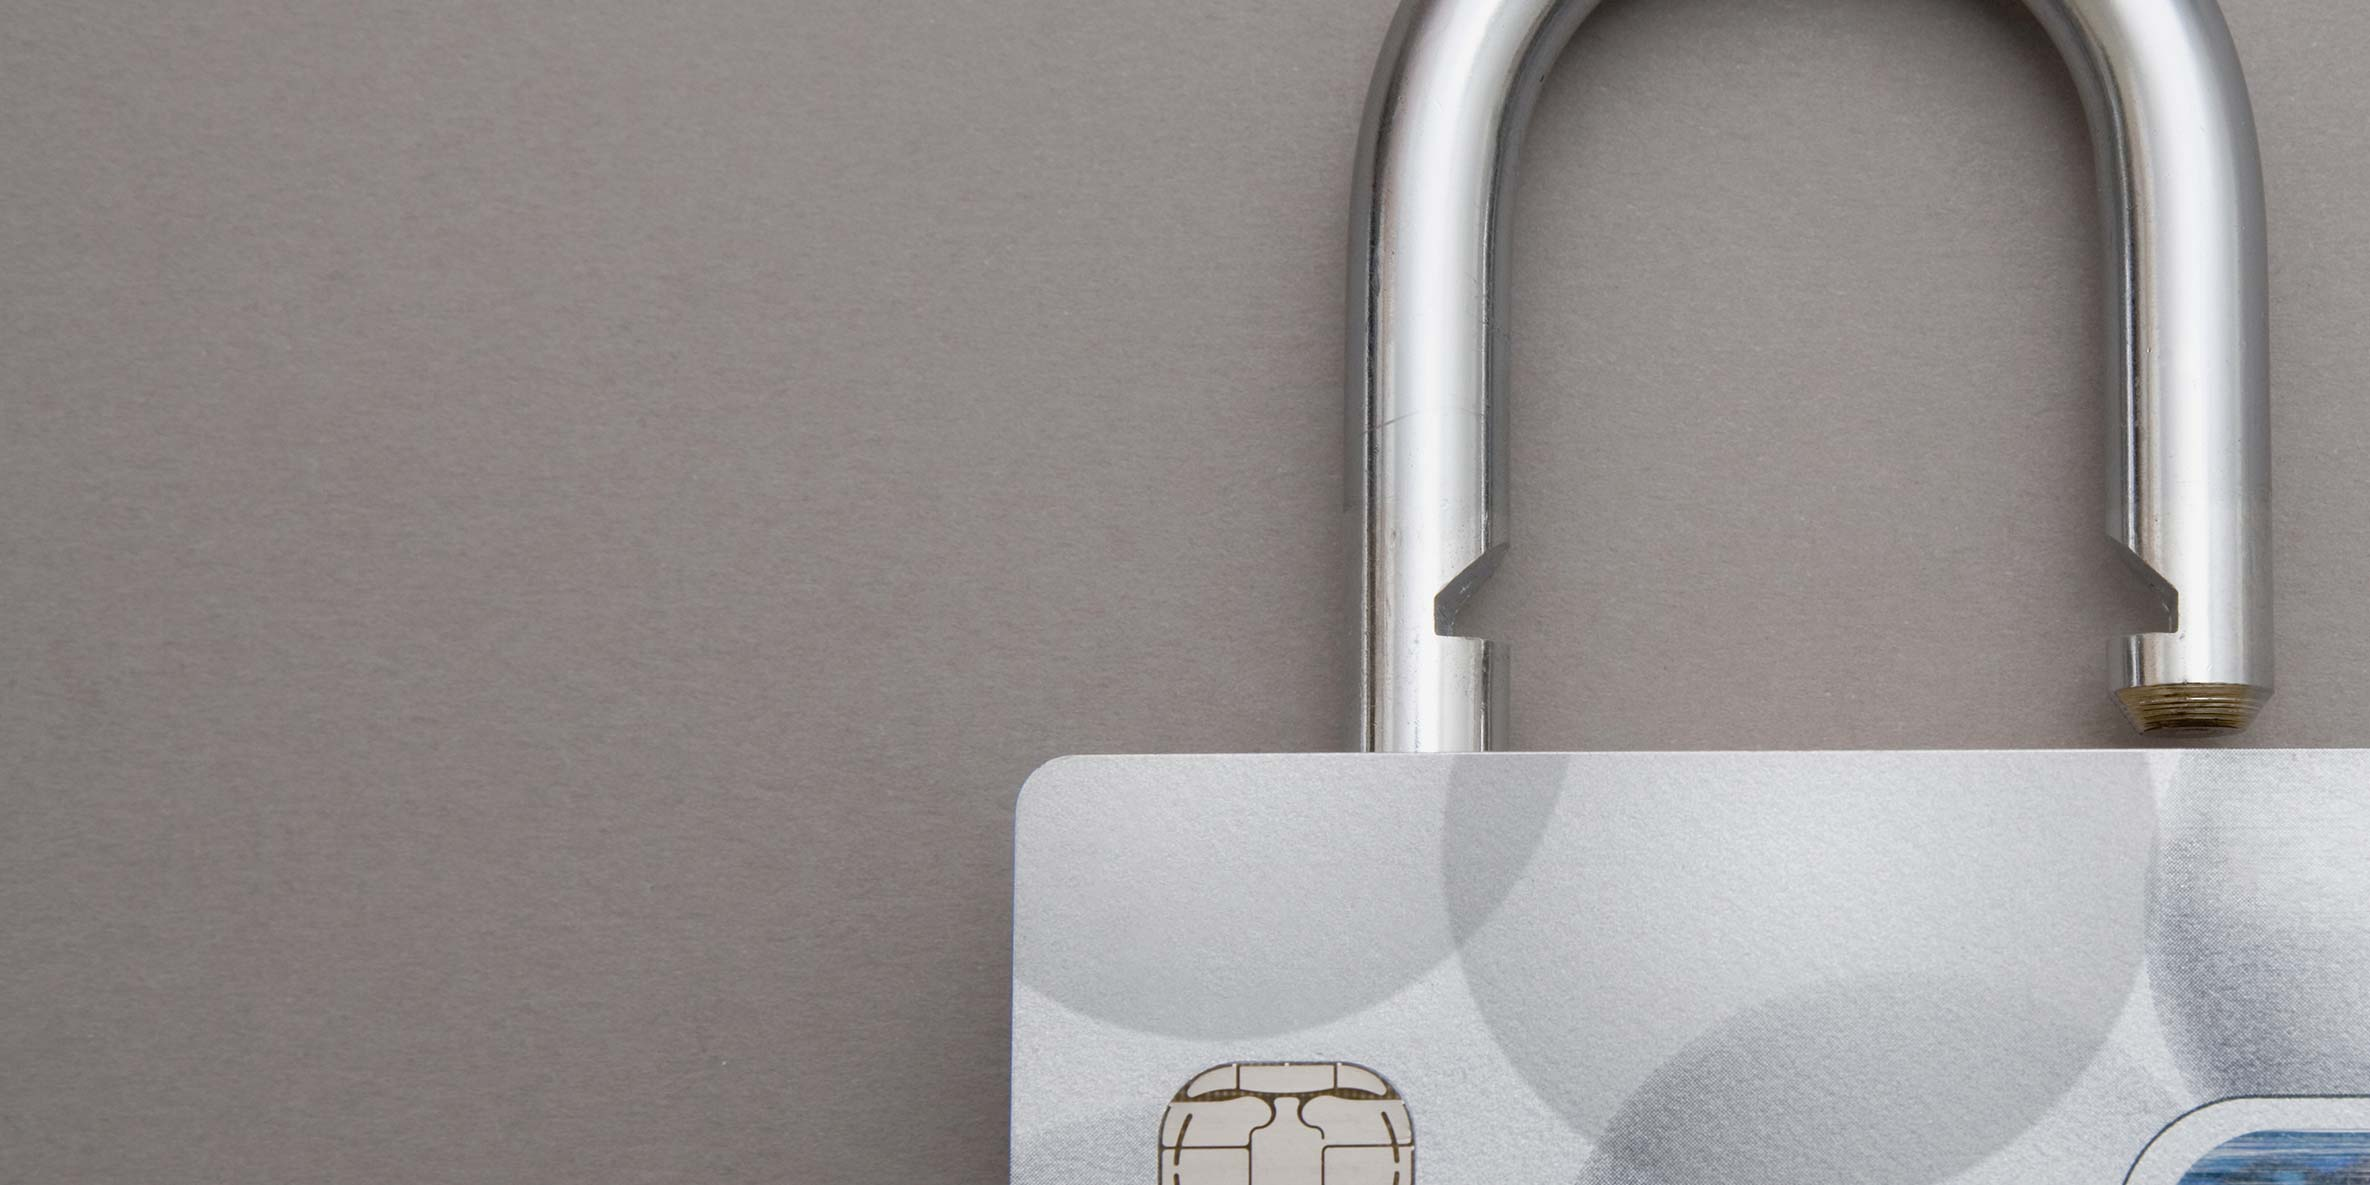 PCI Compliance: How to Secure Credit Card Information